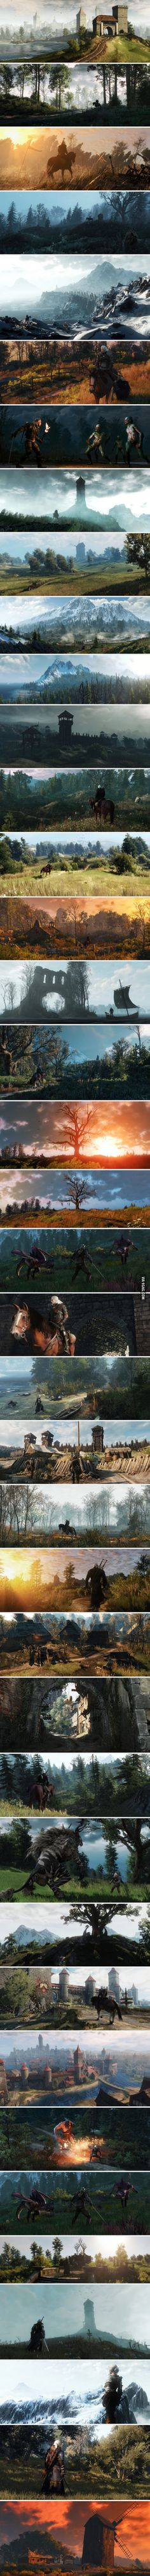 The Witcher series is a huge visual inspiration for the game. Characters wear just barely fantastic versions of historical 15th century clothing. The story and tone are also pretty much right on the money.